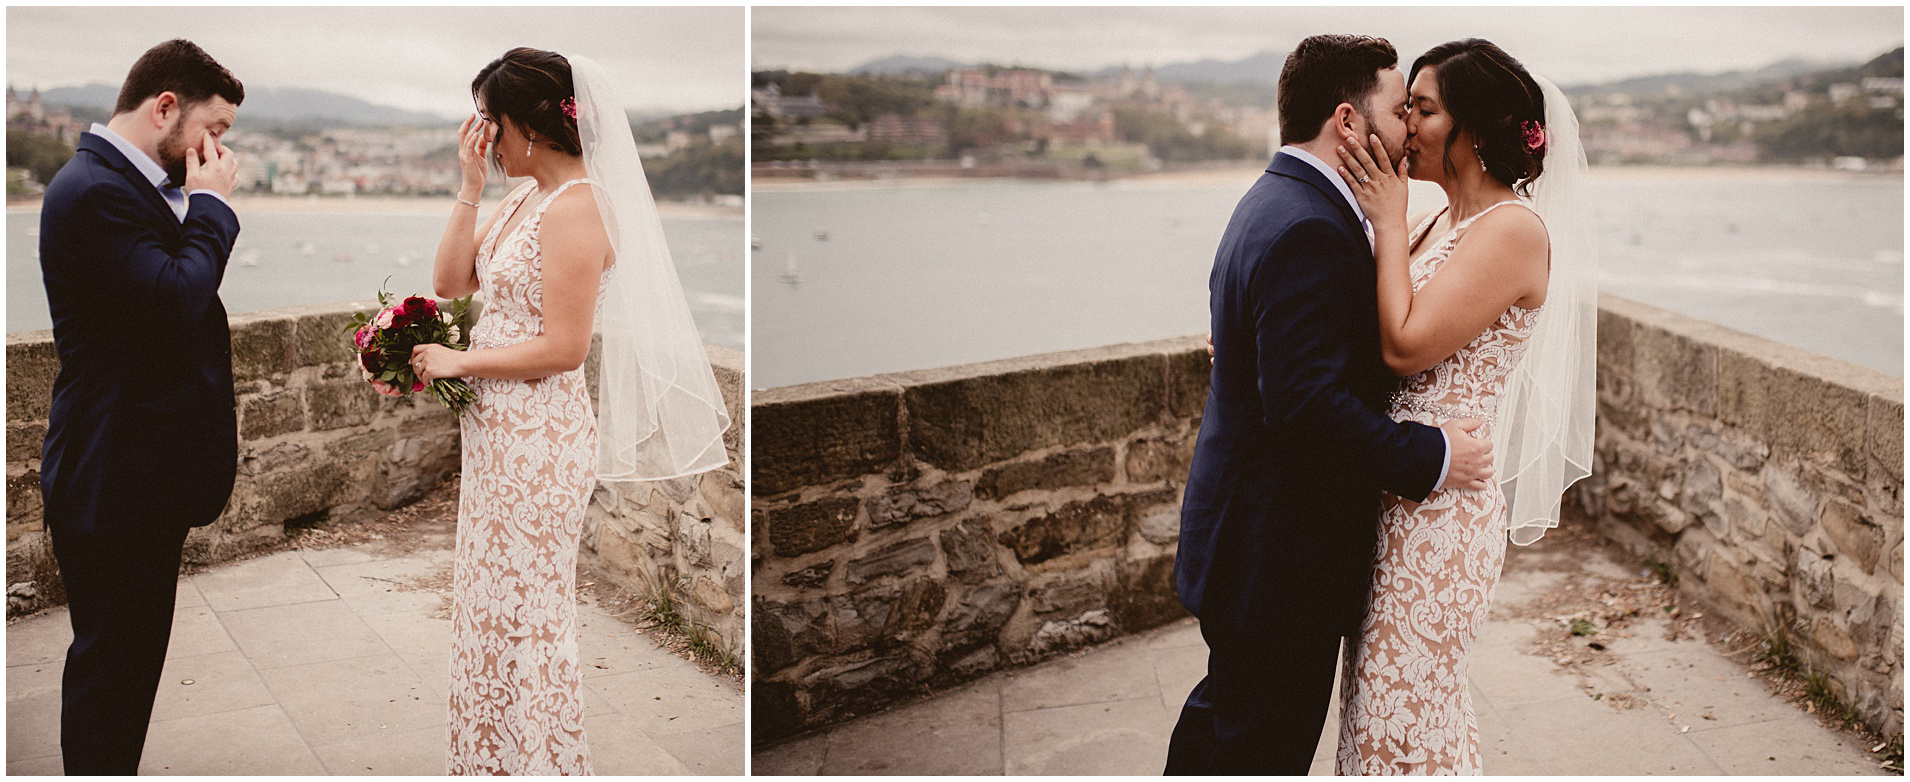 Brian & Julia - Destination wedding in San Sebastián  - Elopement in San Sebastian- ARTEFOTO39.jpg